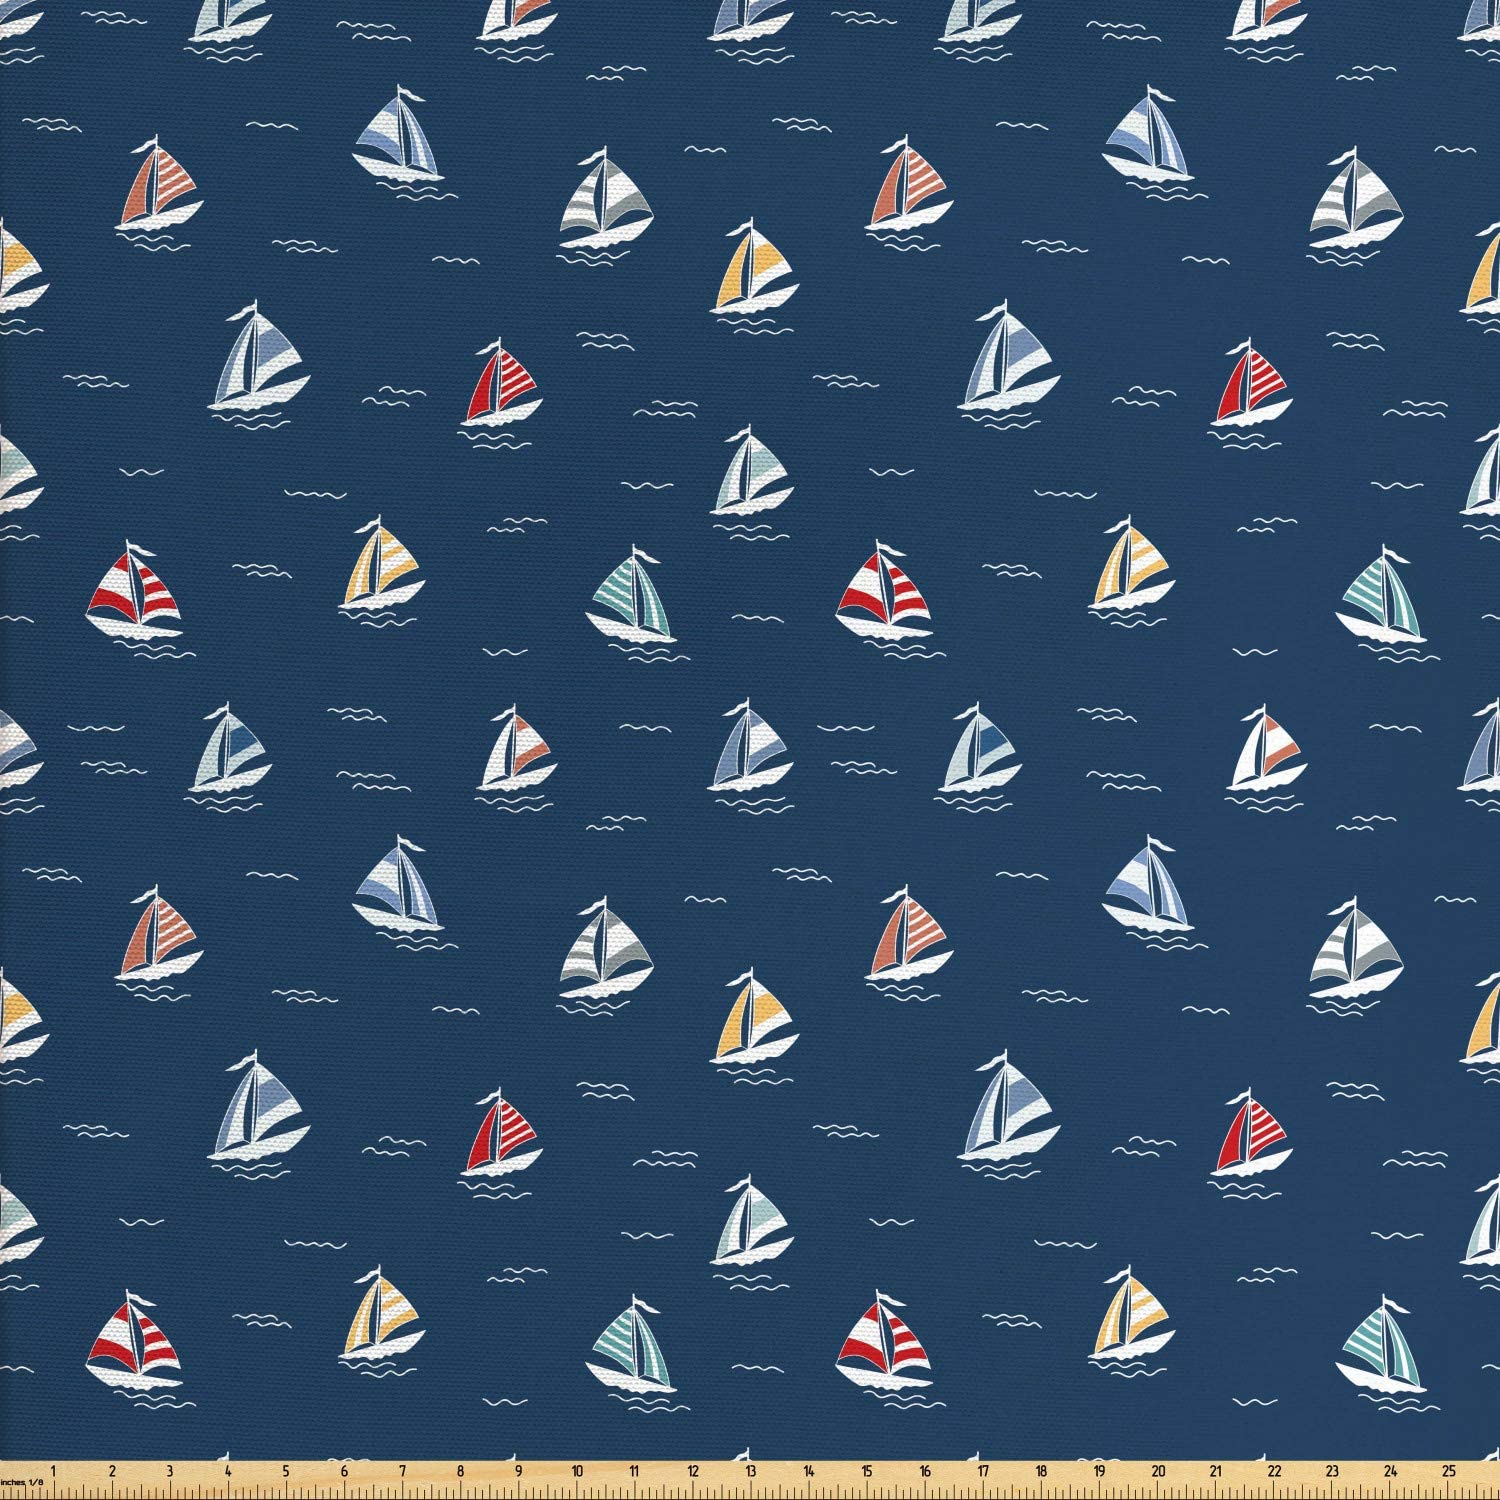 Ambesonne Maritime Fabric by The Yard, Minimal Colorful Sailboats Pattern of Line Art Waves Ocean Themed, Decorative Fabric for Upholstery and Home Accents, 1 Yard, Dark Sky Blue Multicolor